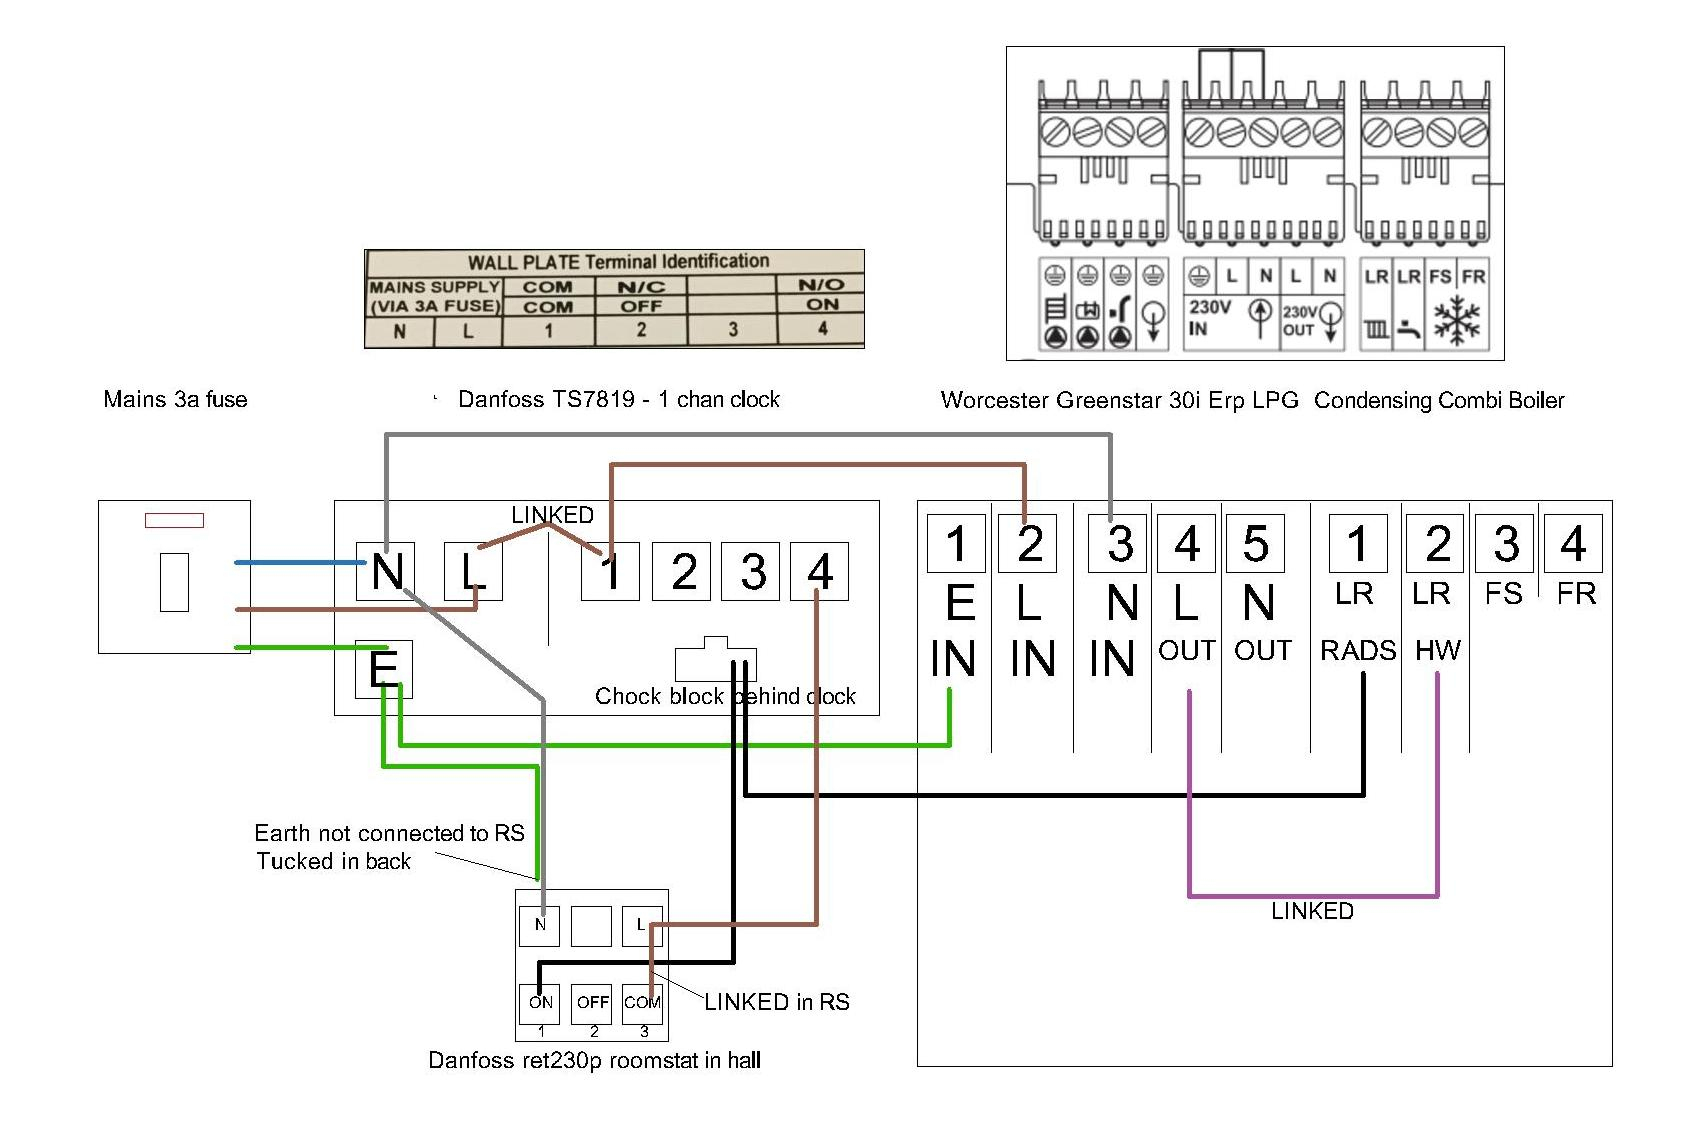 Current Boiler Diagram And Looking To Go Nest. | Diynot Forums - Nest Wiring Diagram System Boiler